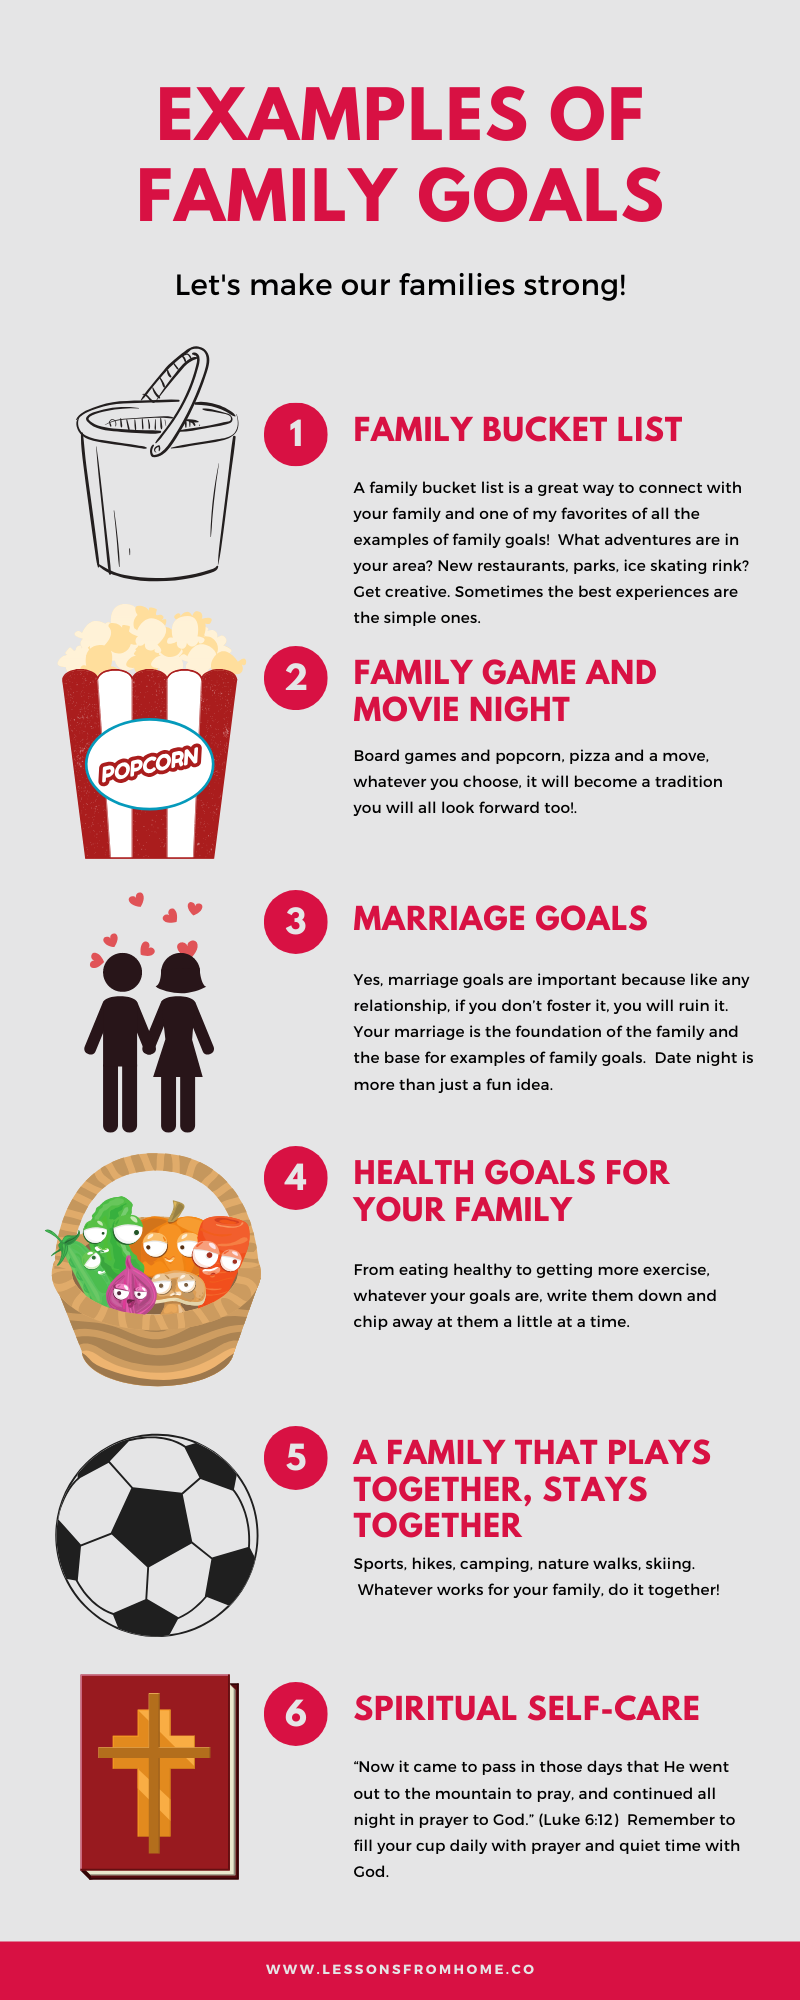 Examples of Family Goals examplesofgoals Family bucket